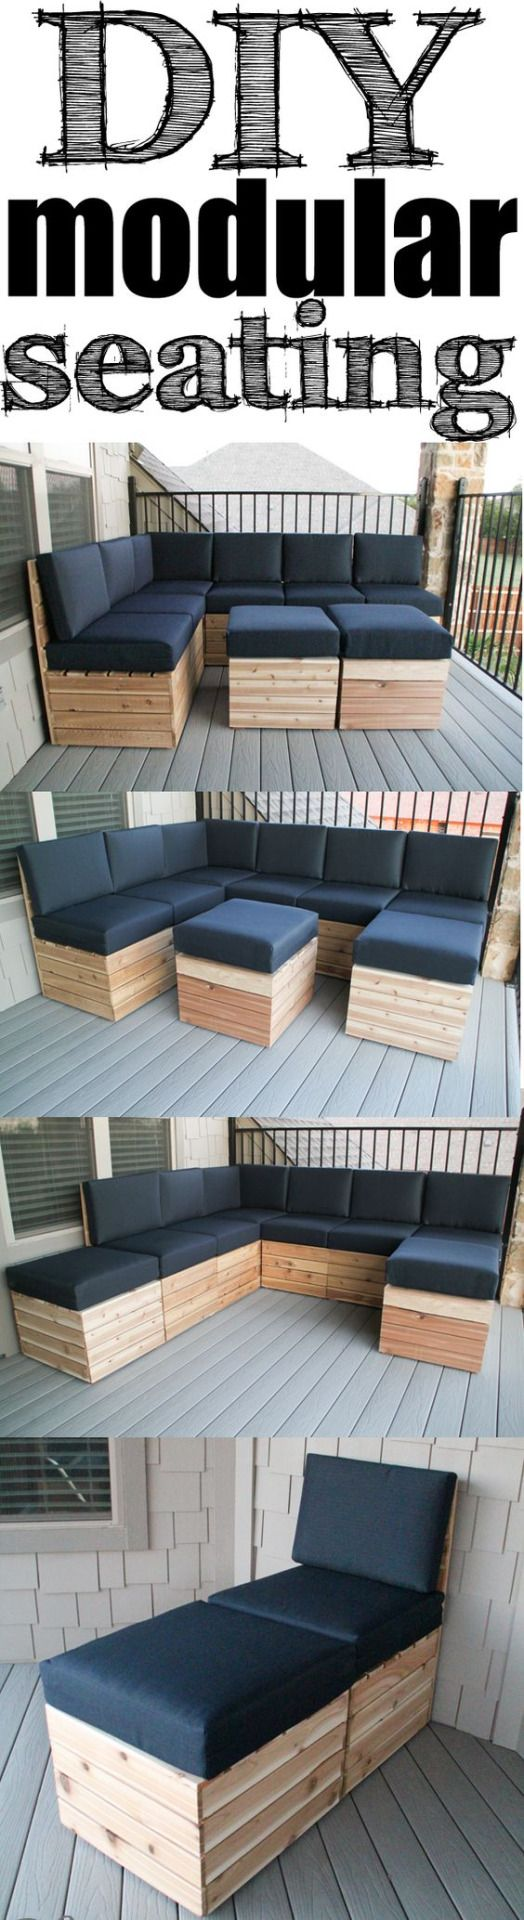 best upcycled furniture images on pinterest repurposed